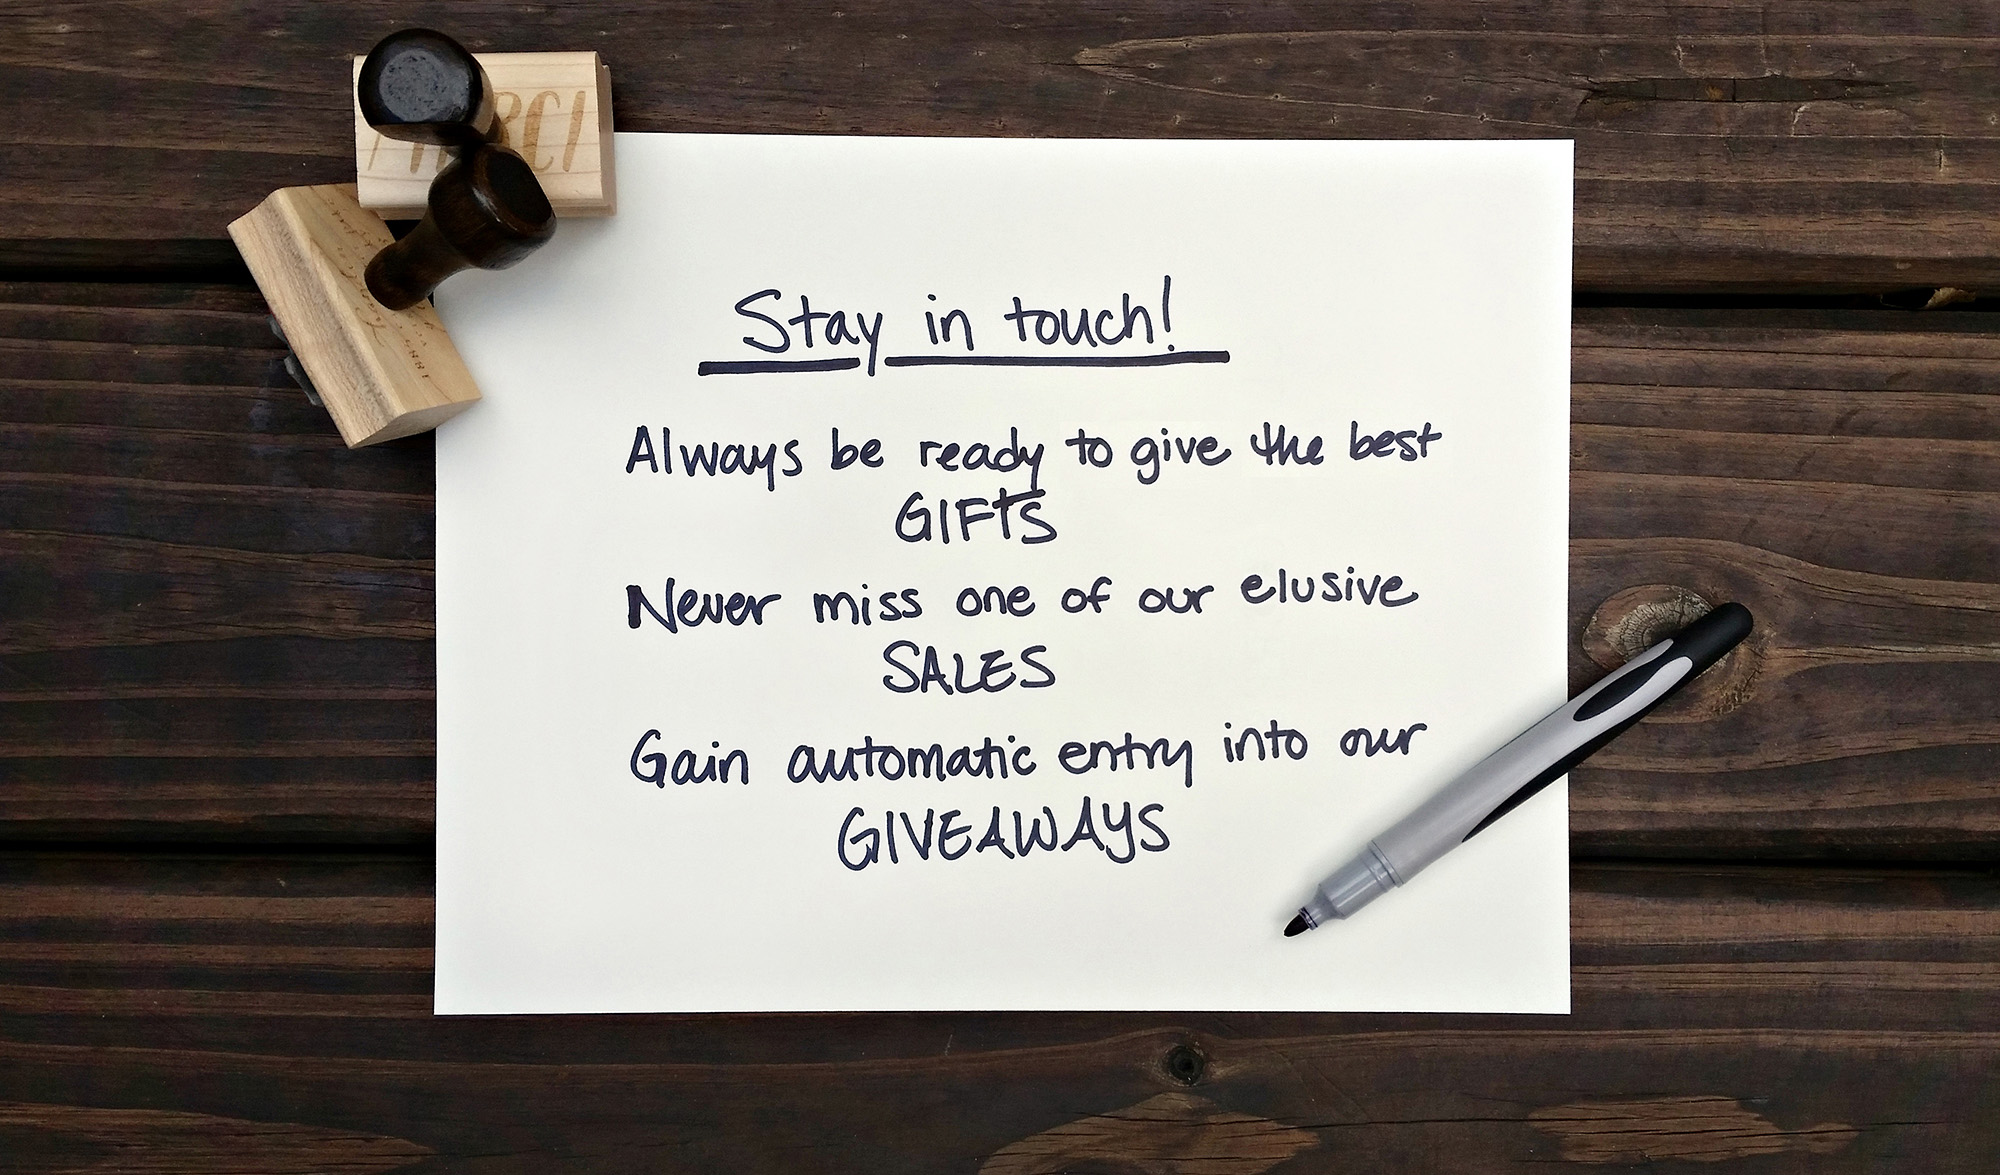 Stay in touch! Always be ready to give the best gifts, never miss one of our elusive sales, gain automatic entry into our giveaways.